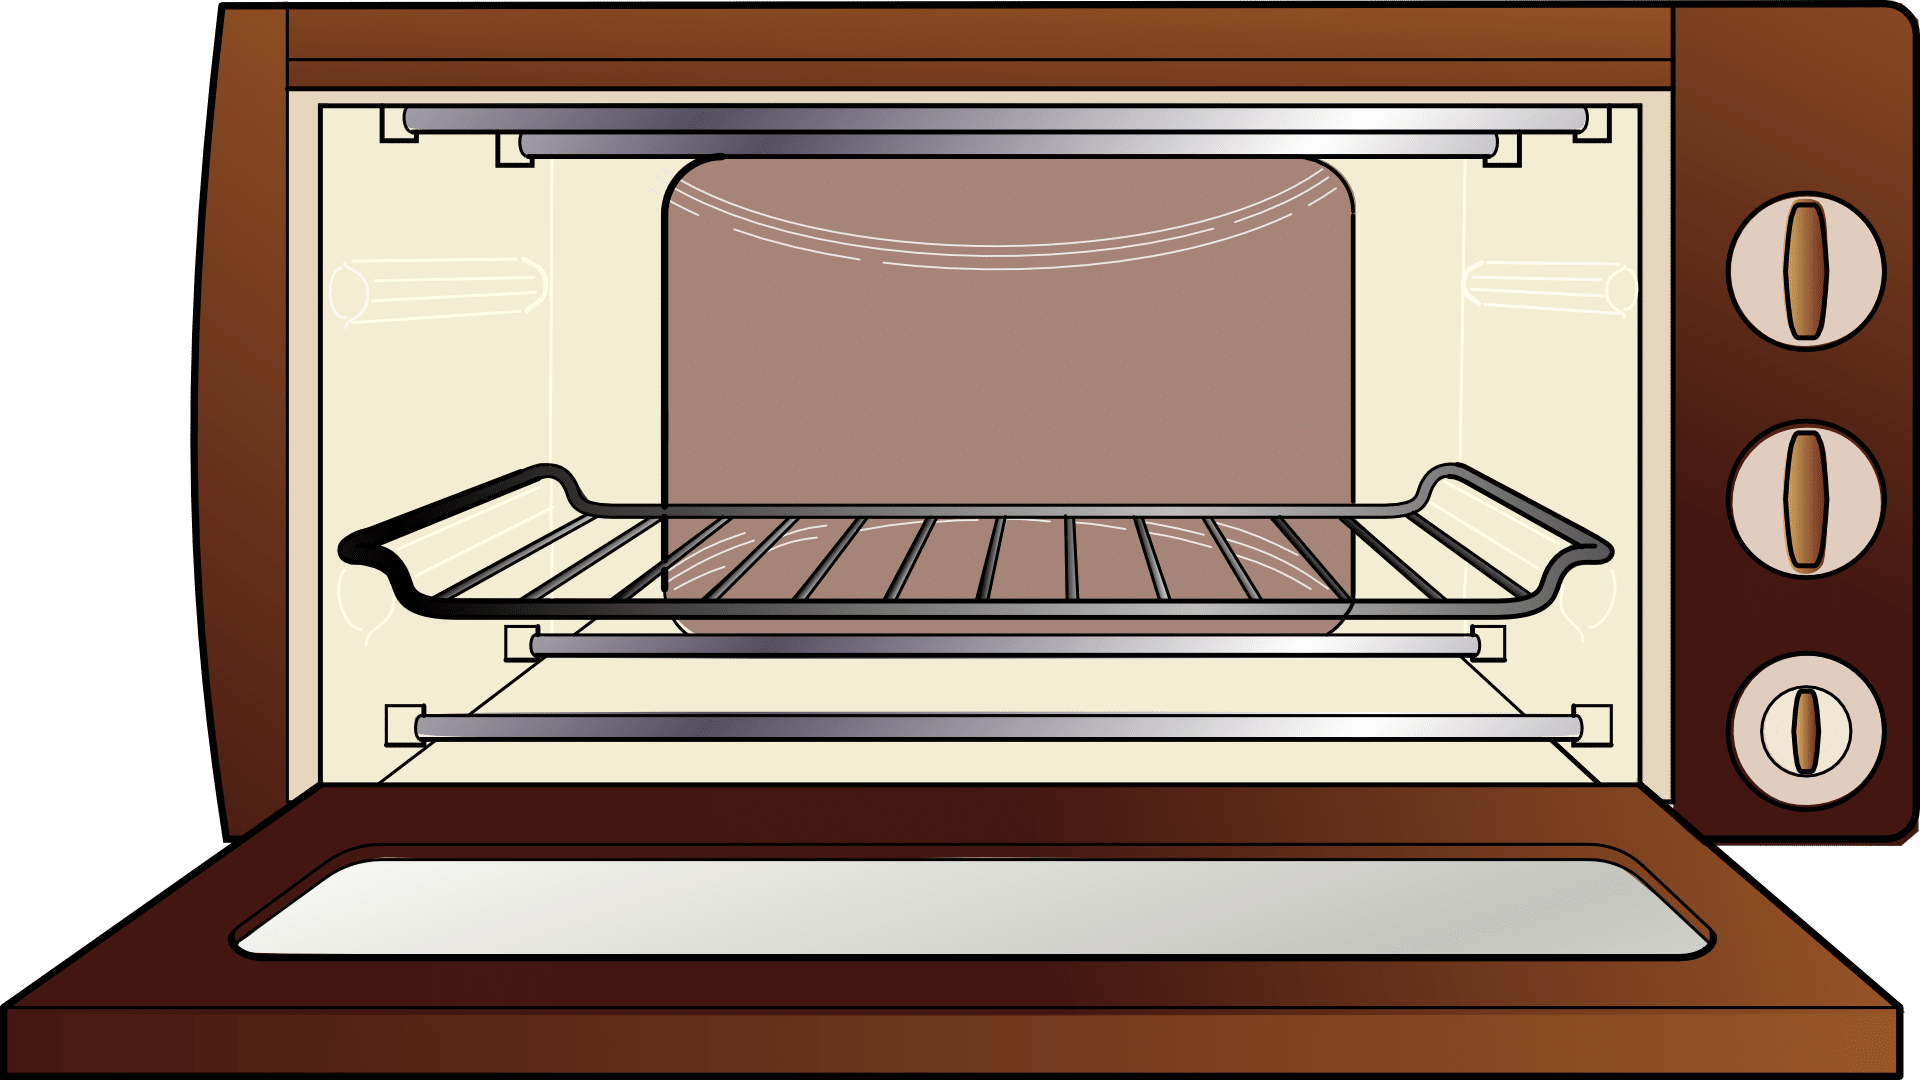 microwave, oven, cooker